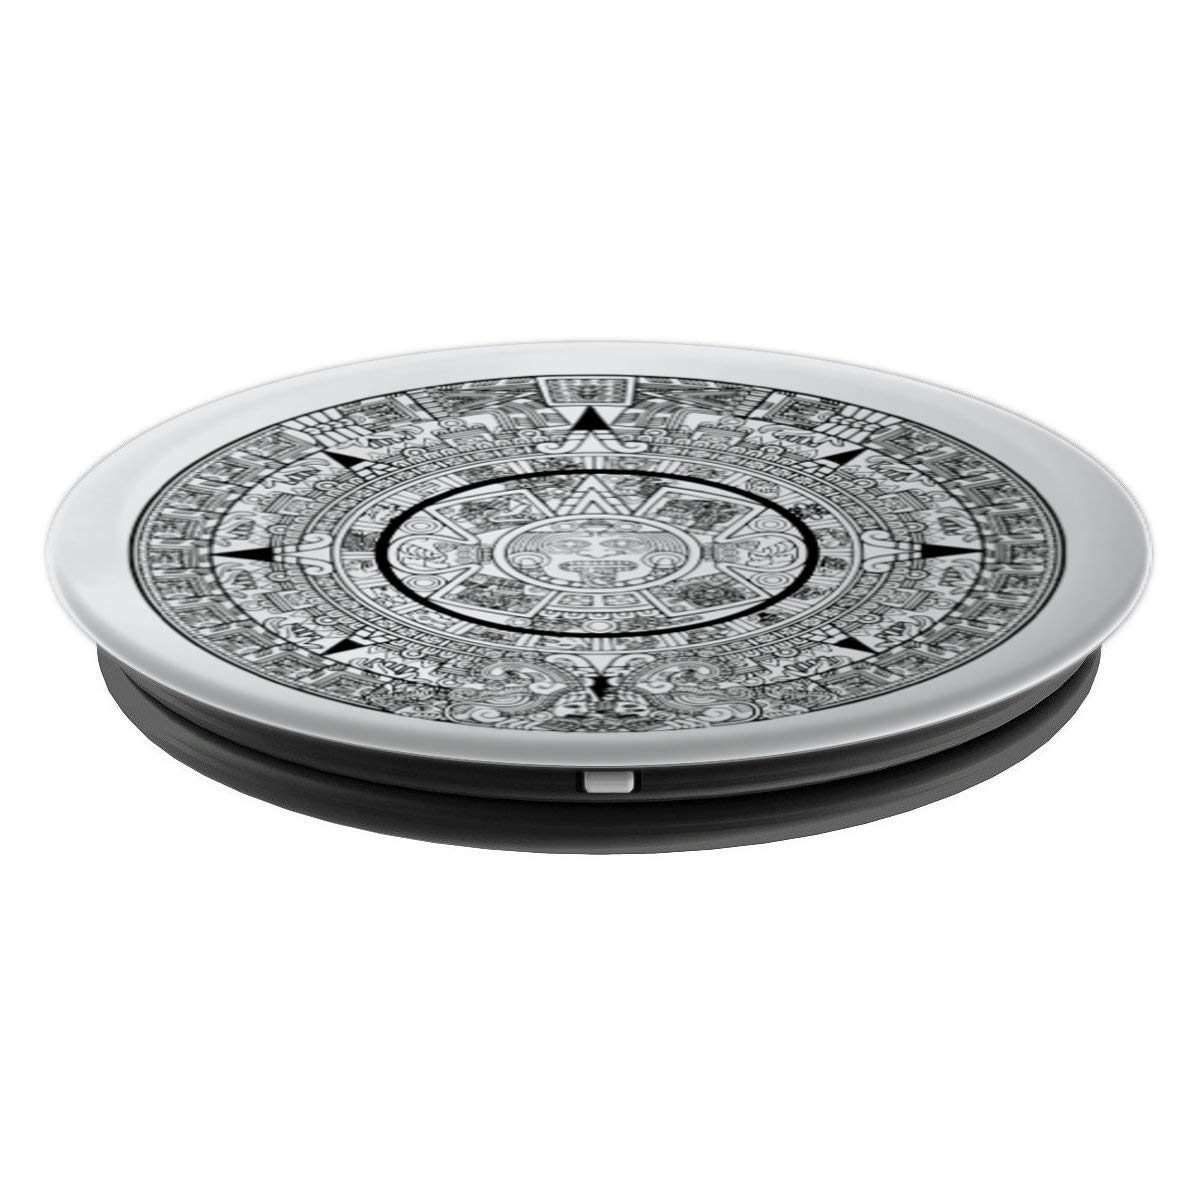 Amazon.com: Mexican style calendario azteca - PopSockets Grip and Stand for Phones and Tablets: Cell Phones & Accessories